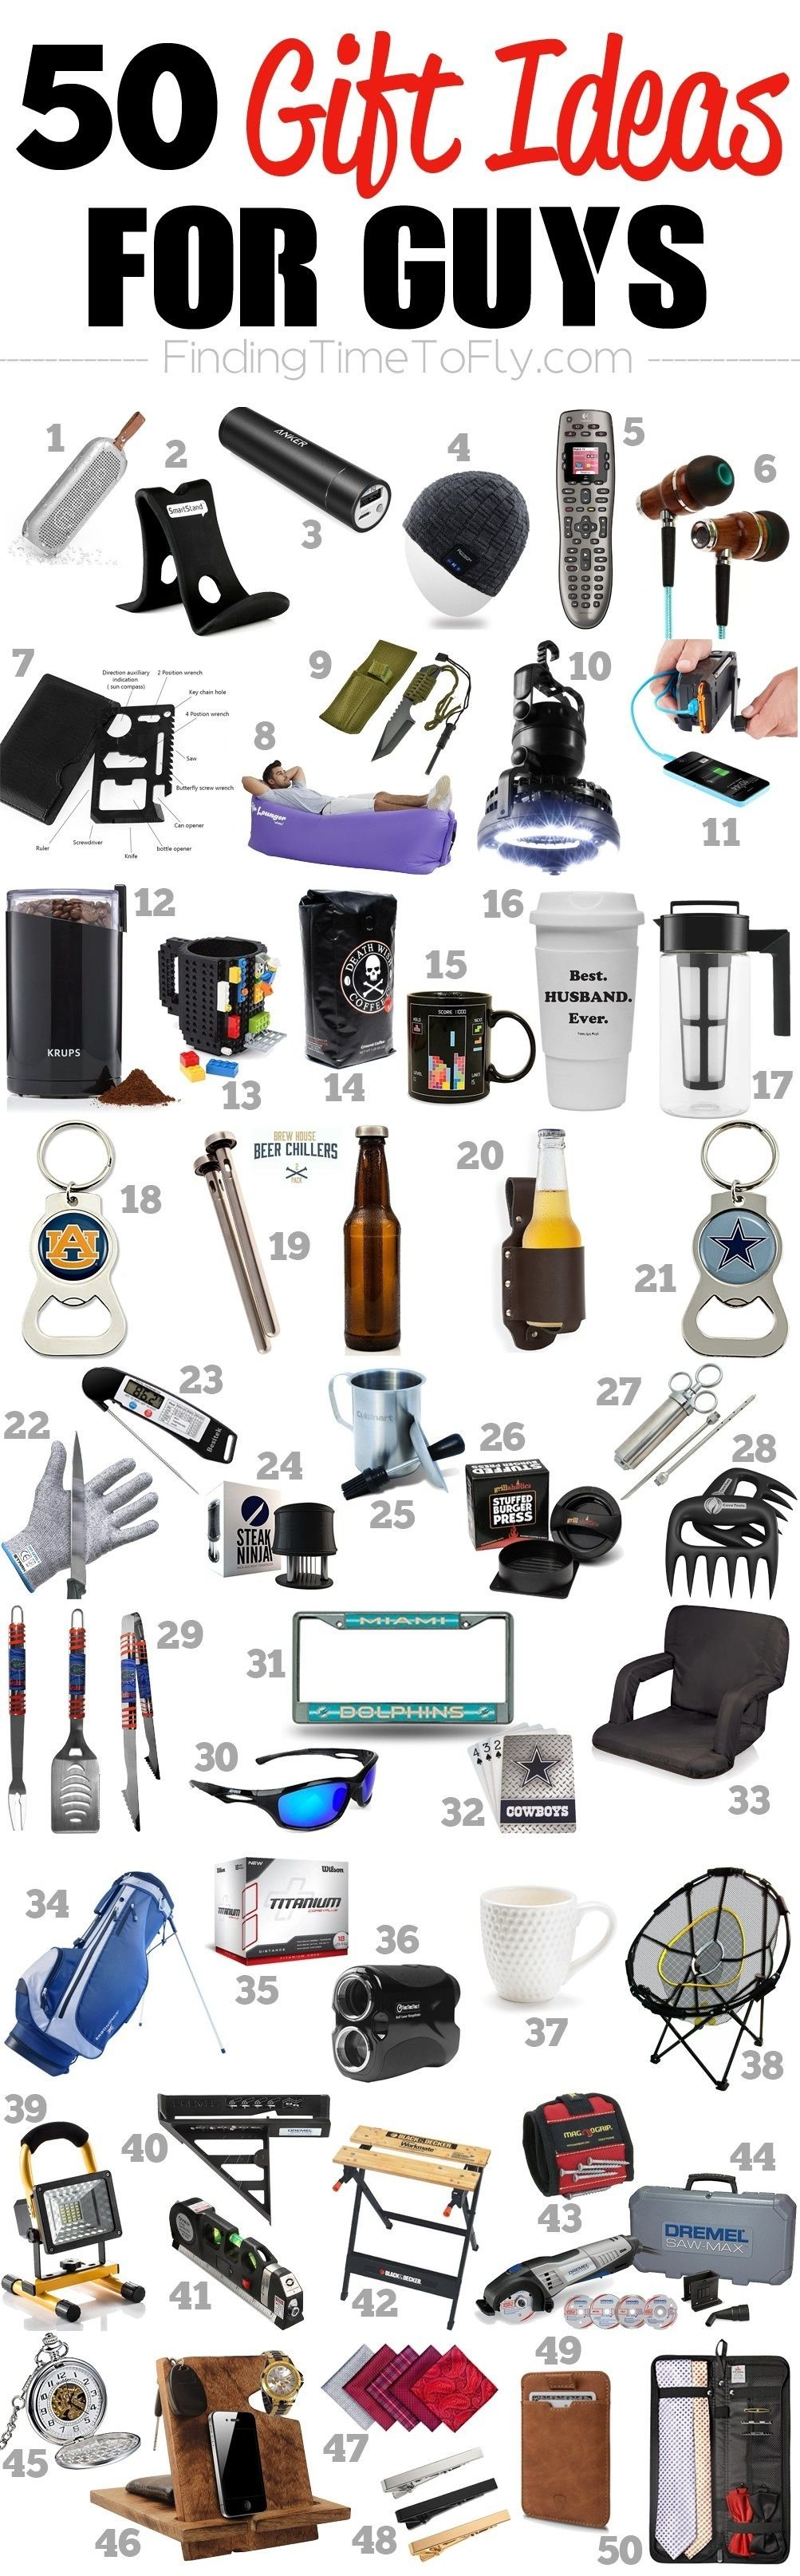 10 Pretty Christmas Gifts Ideas For Men 50 gifts for guys for every occasion outdoor gear christmas gifts 11 2020